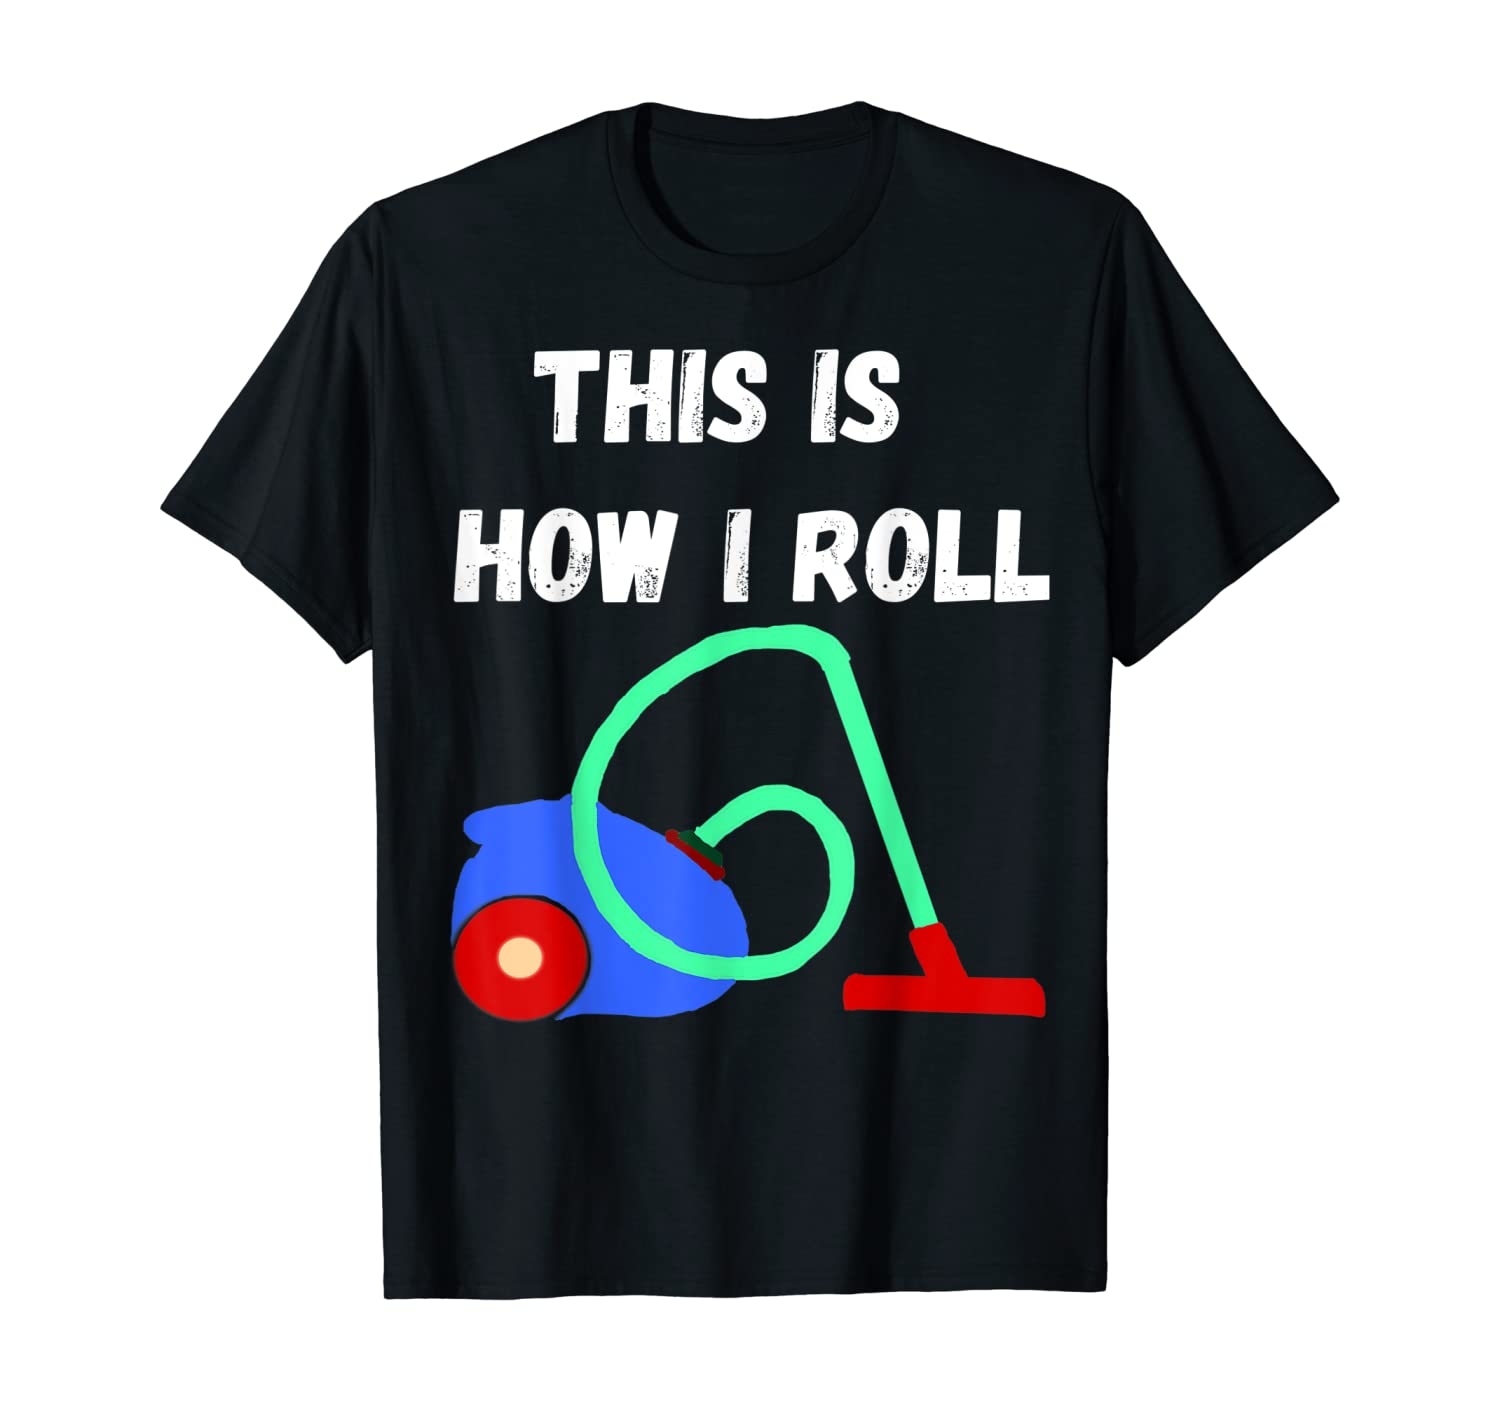 Vacuum Cleaner This Is How I Roll Hoover Household T-Shirt